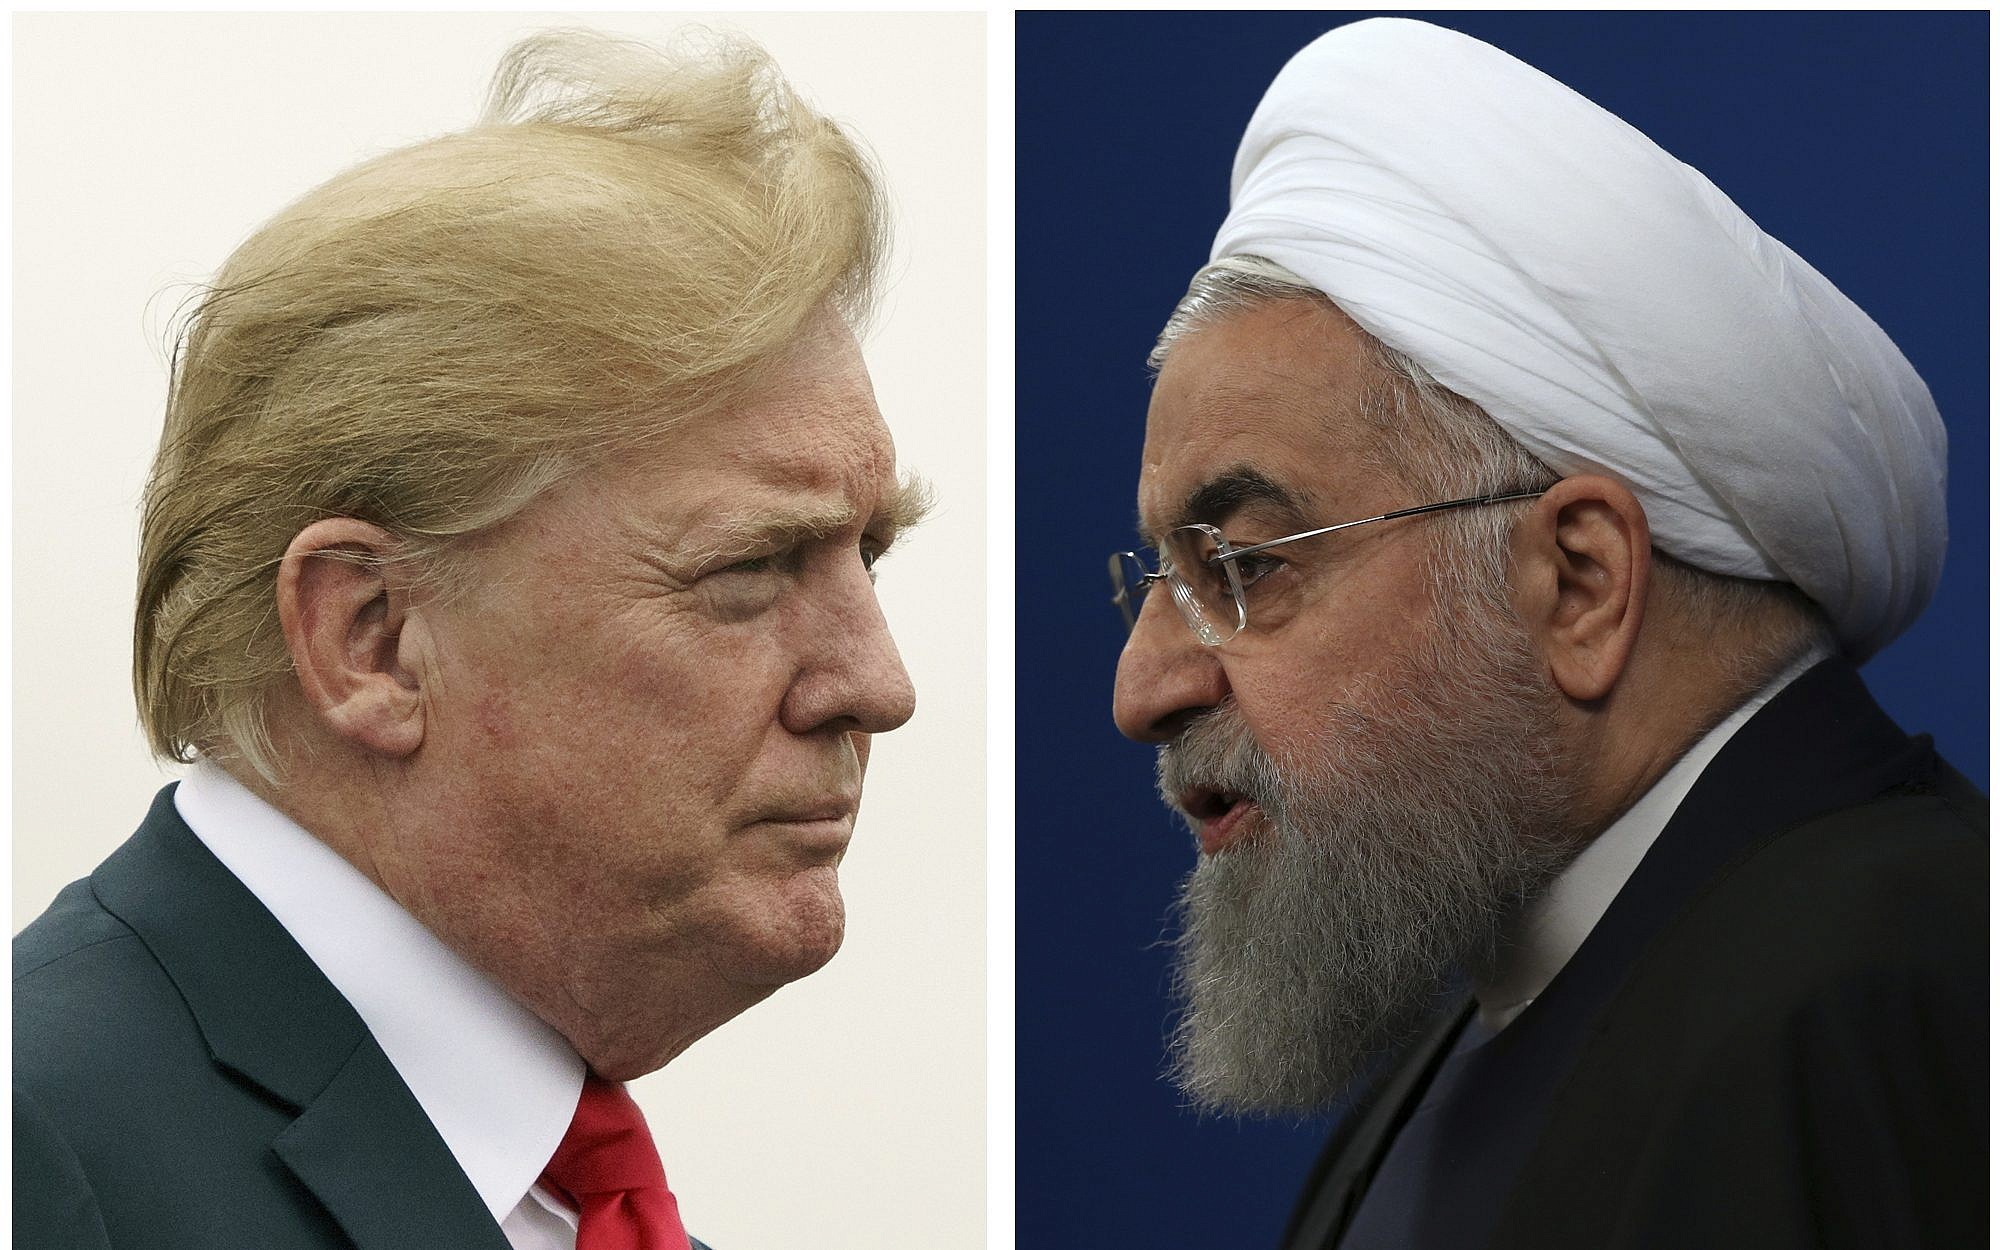 Trump signals could meet with Iran, as security hawk Bolton exits